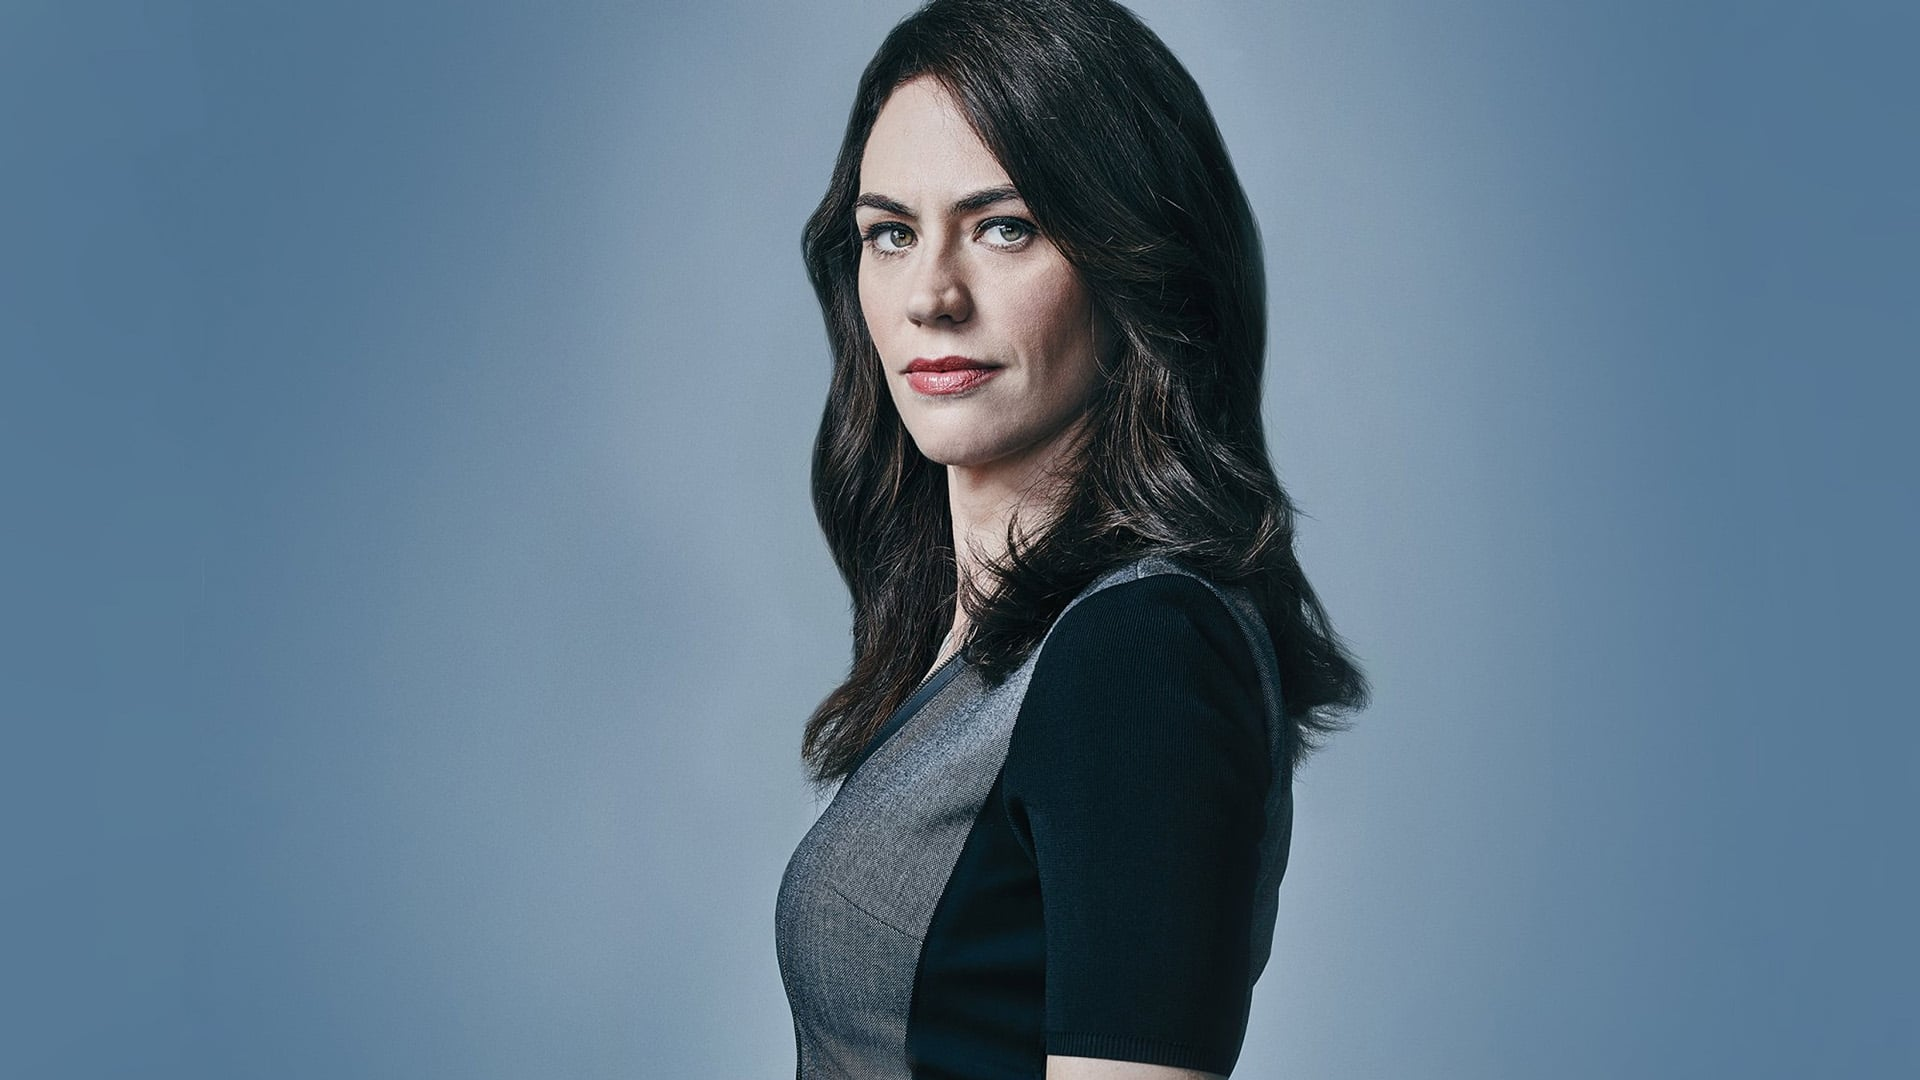 Maggie siff 2018